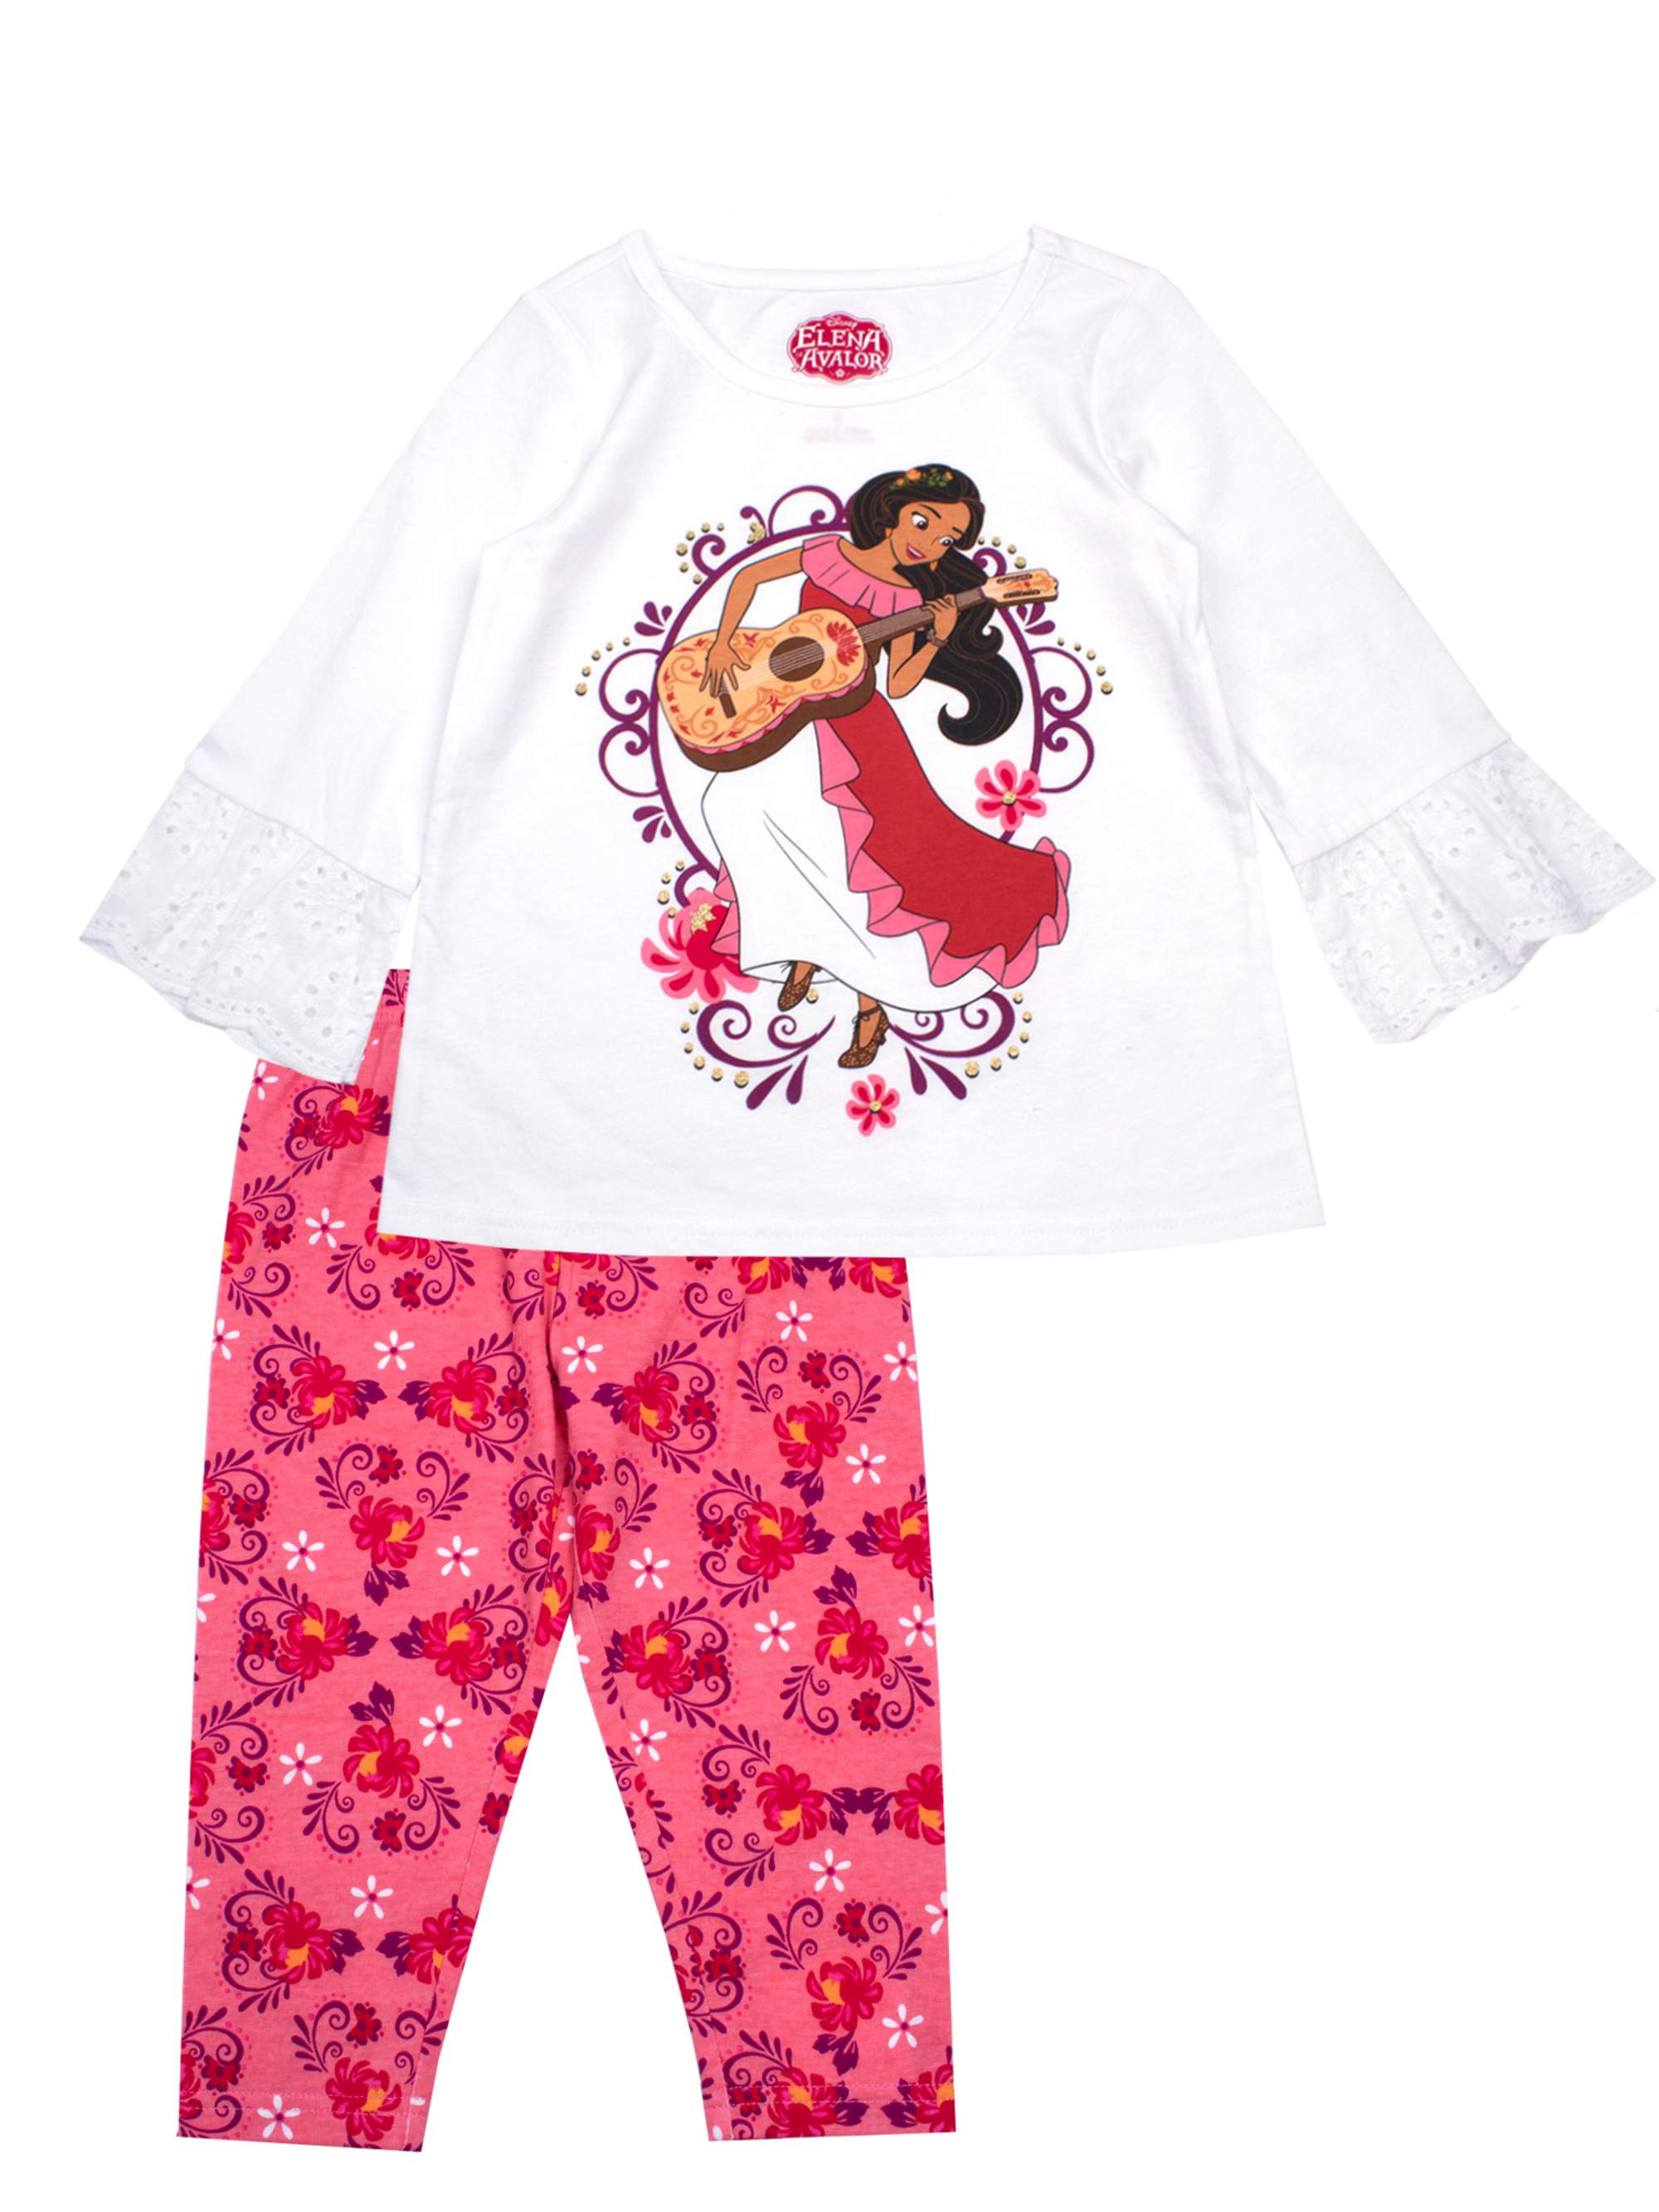 Elena Eyelet Sleeve Top and Legging, 2-Piece Outfit Set (Little Girls)